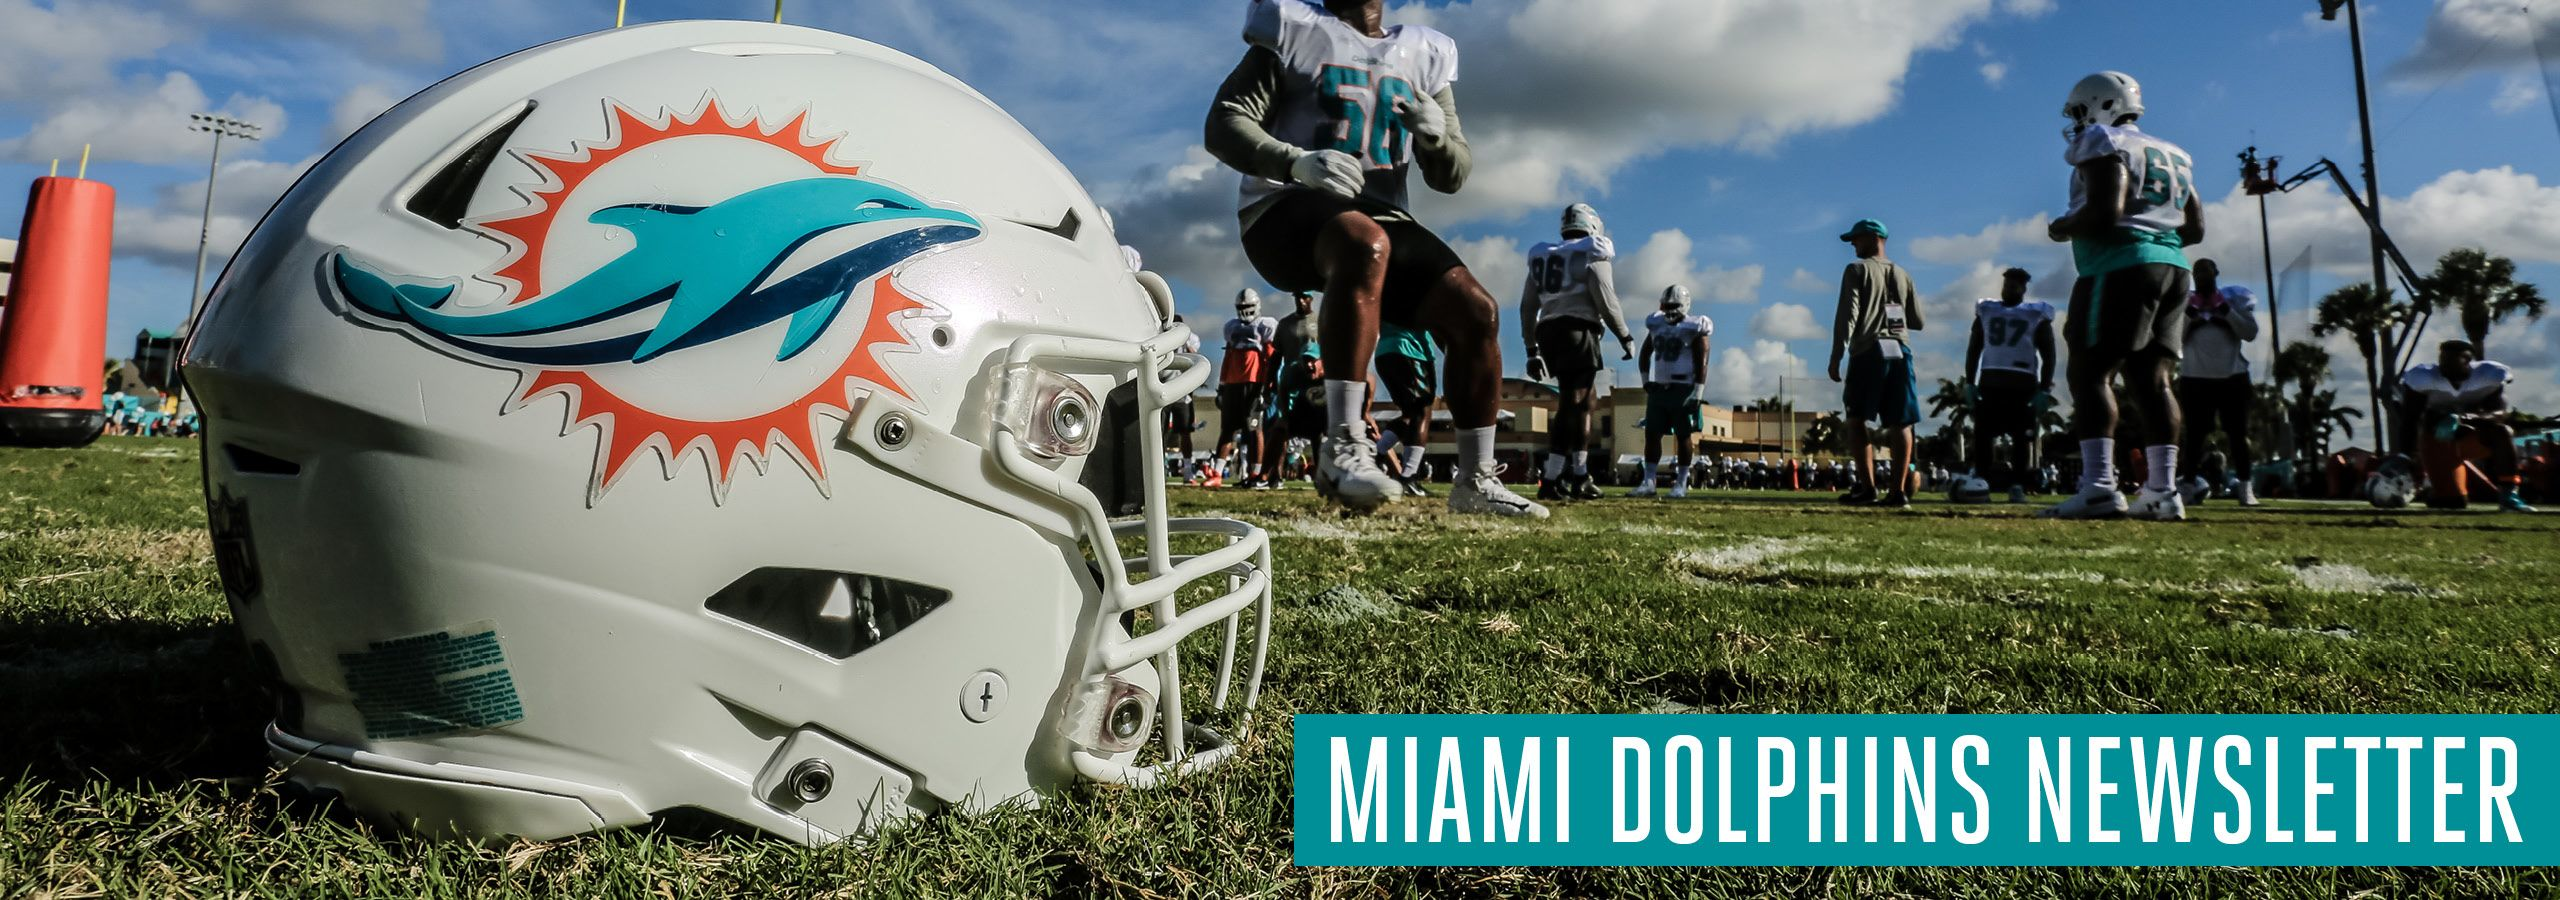 Graphic: Header - Miami Dolphins Newsletter